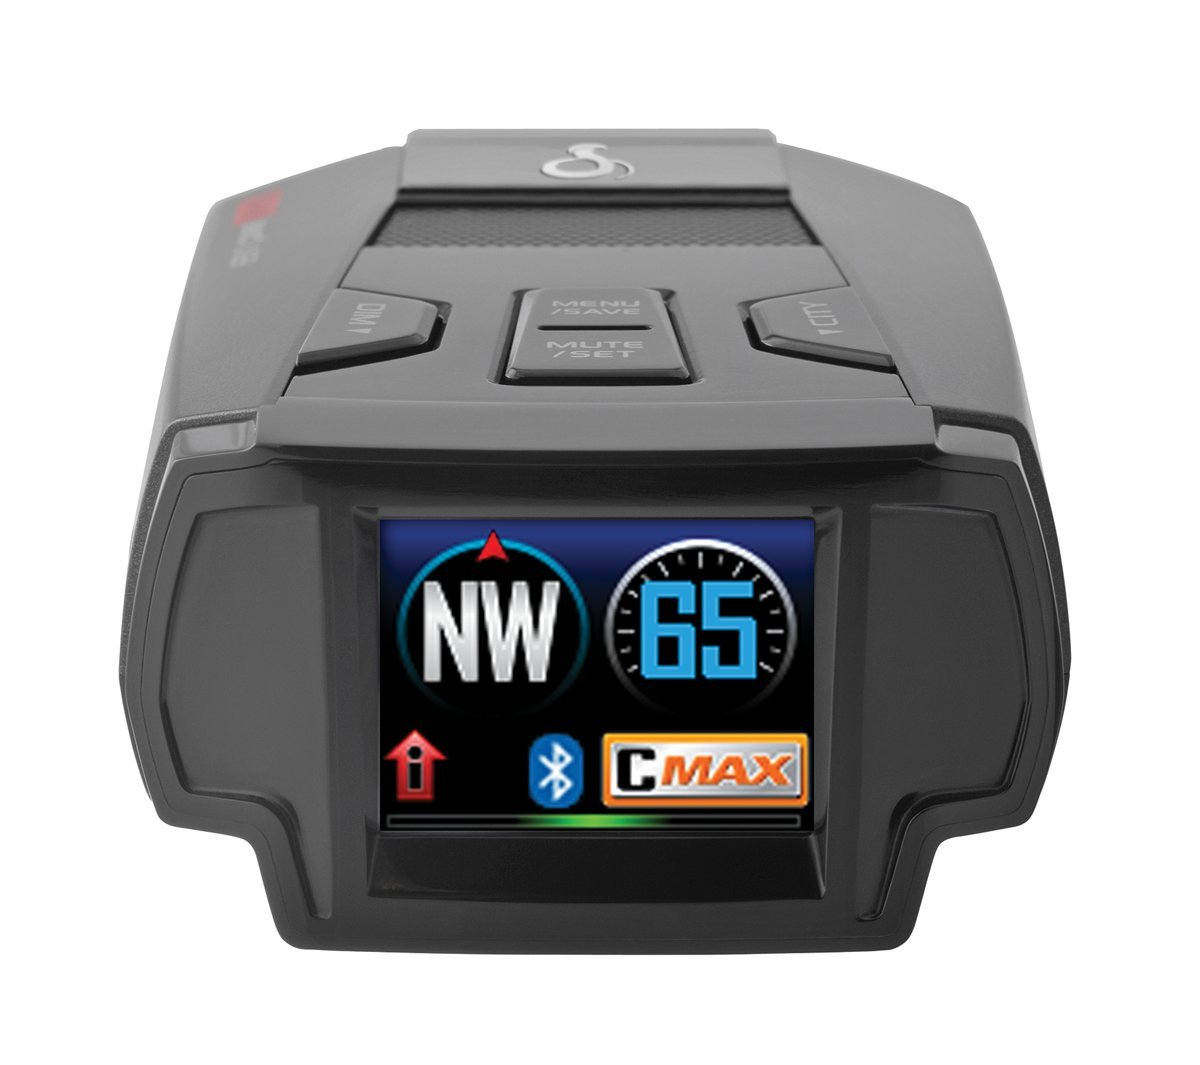 Cobra Electronics SPX 7800BT Maximum Performance Radar/Laser/Camera Detector by Cobra